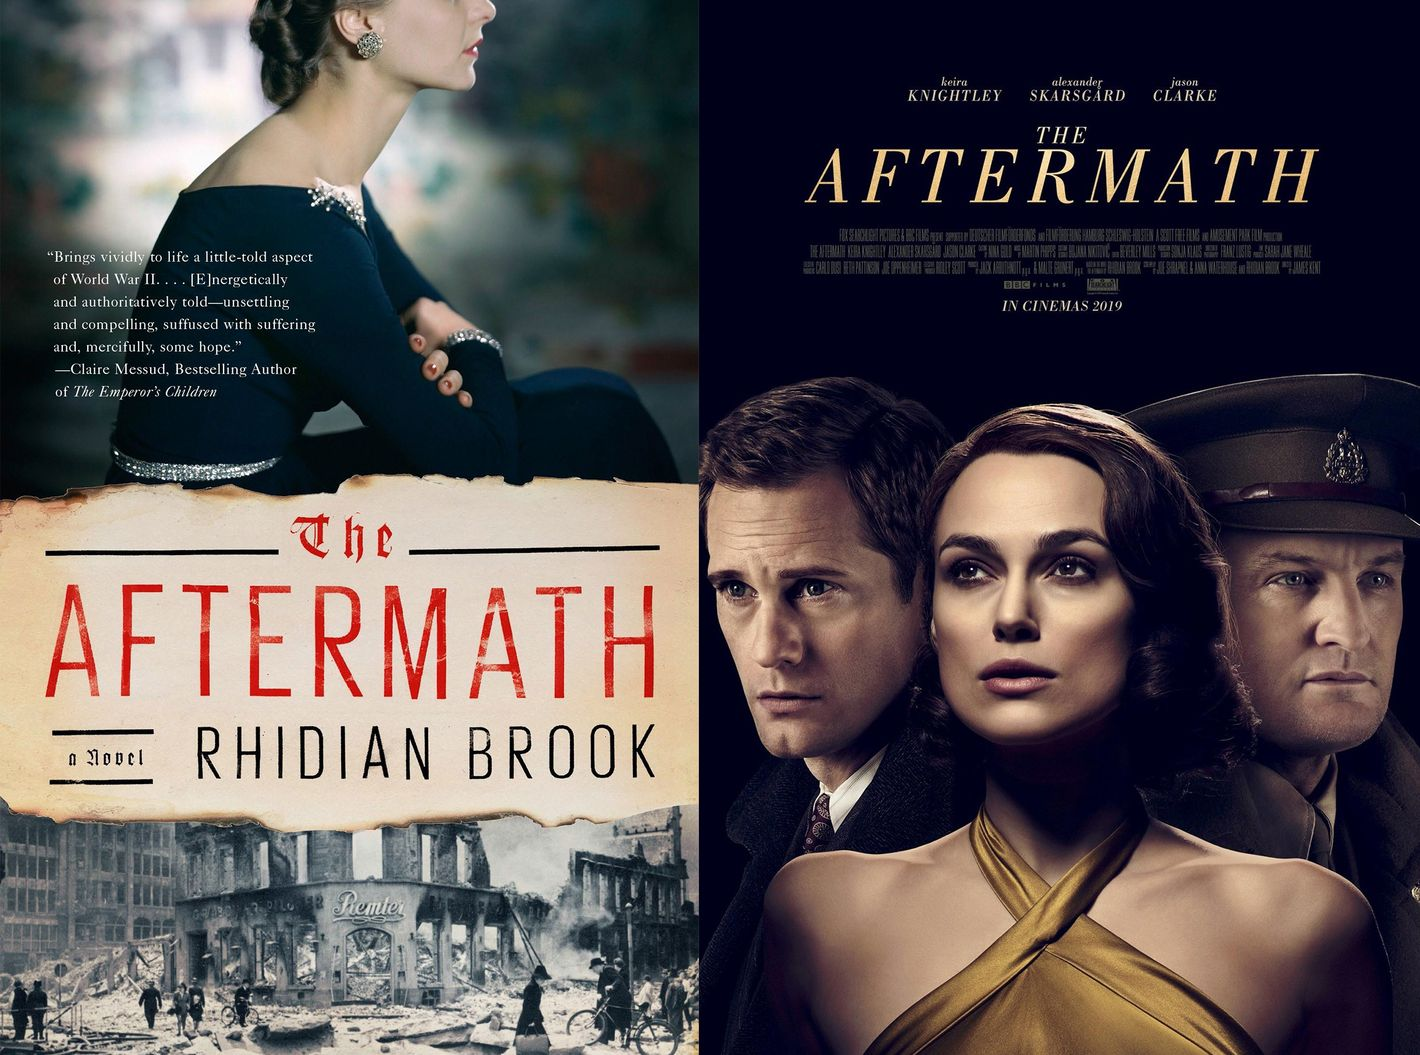 19 Movies Based on Books Coming Out in 2019